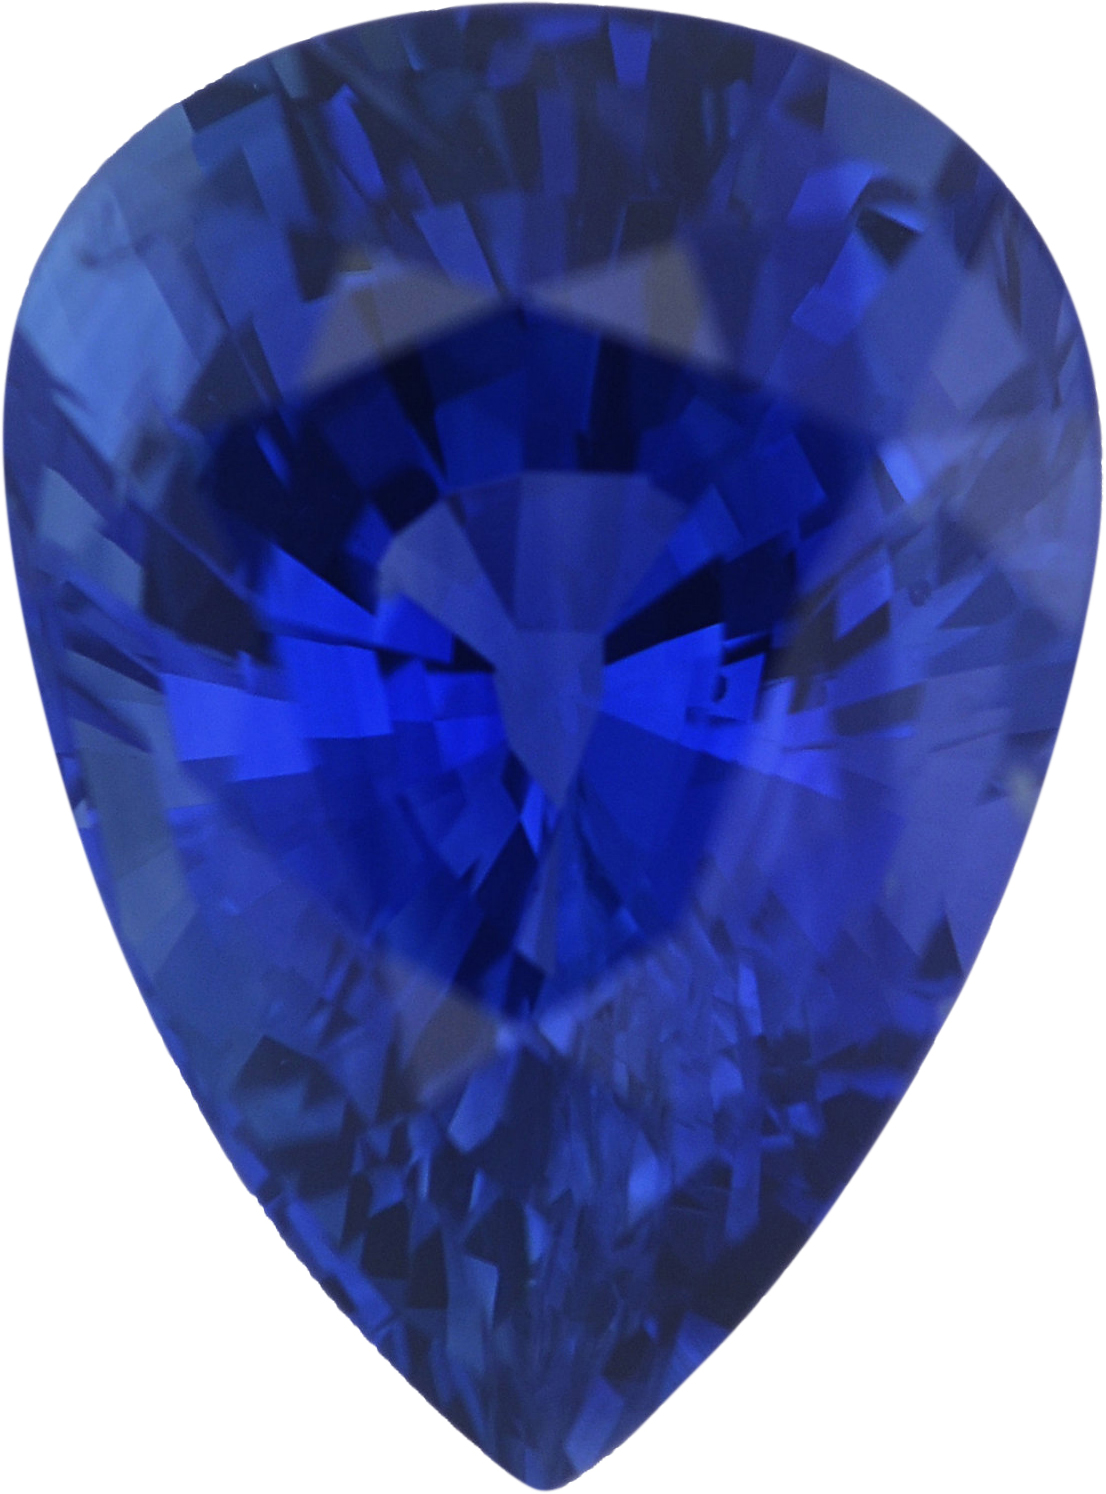 1.83 carats Blue Loose Sapphire Gemstone in Pear Cut, 8.61 x 6.46 mm